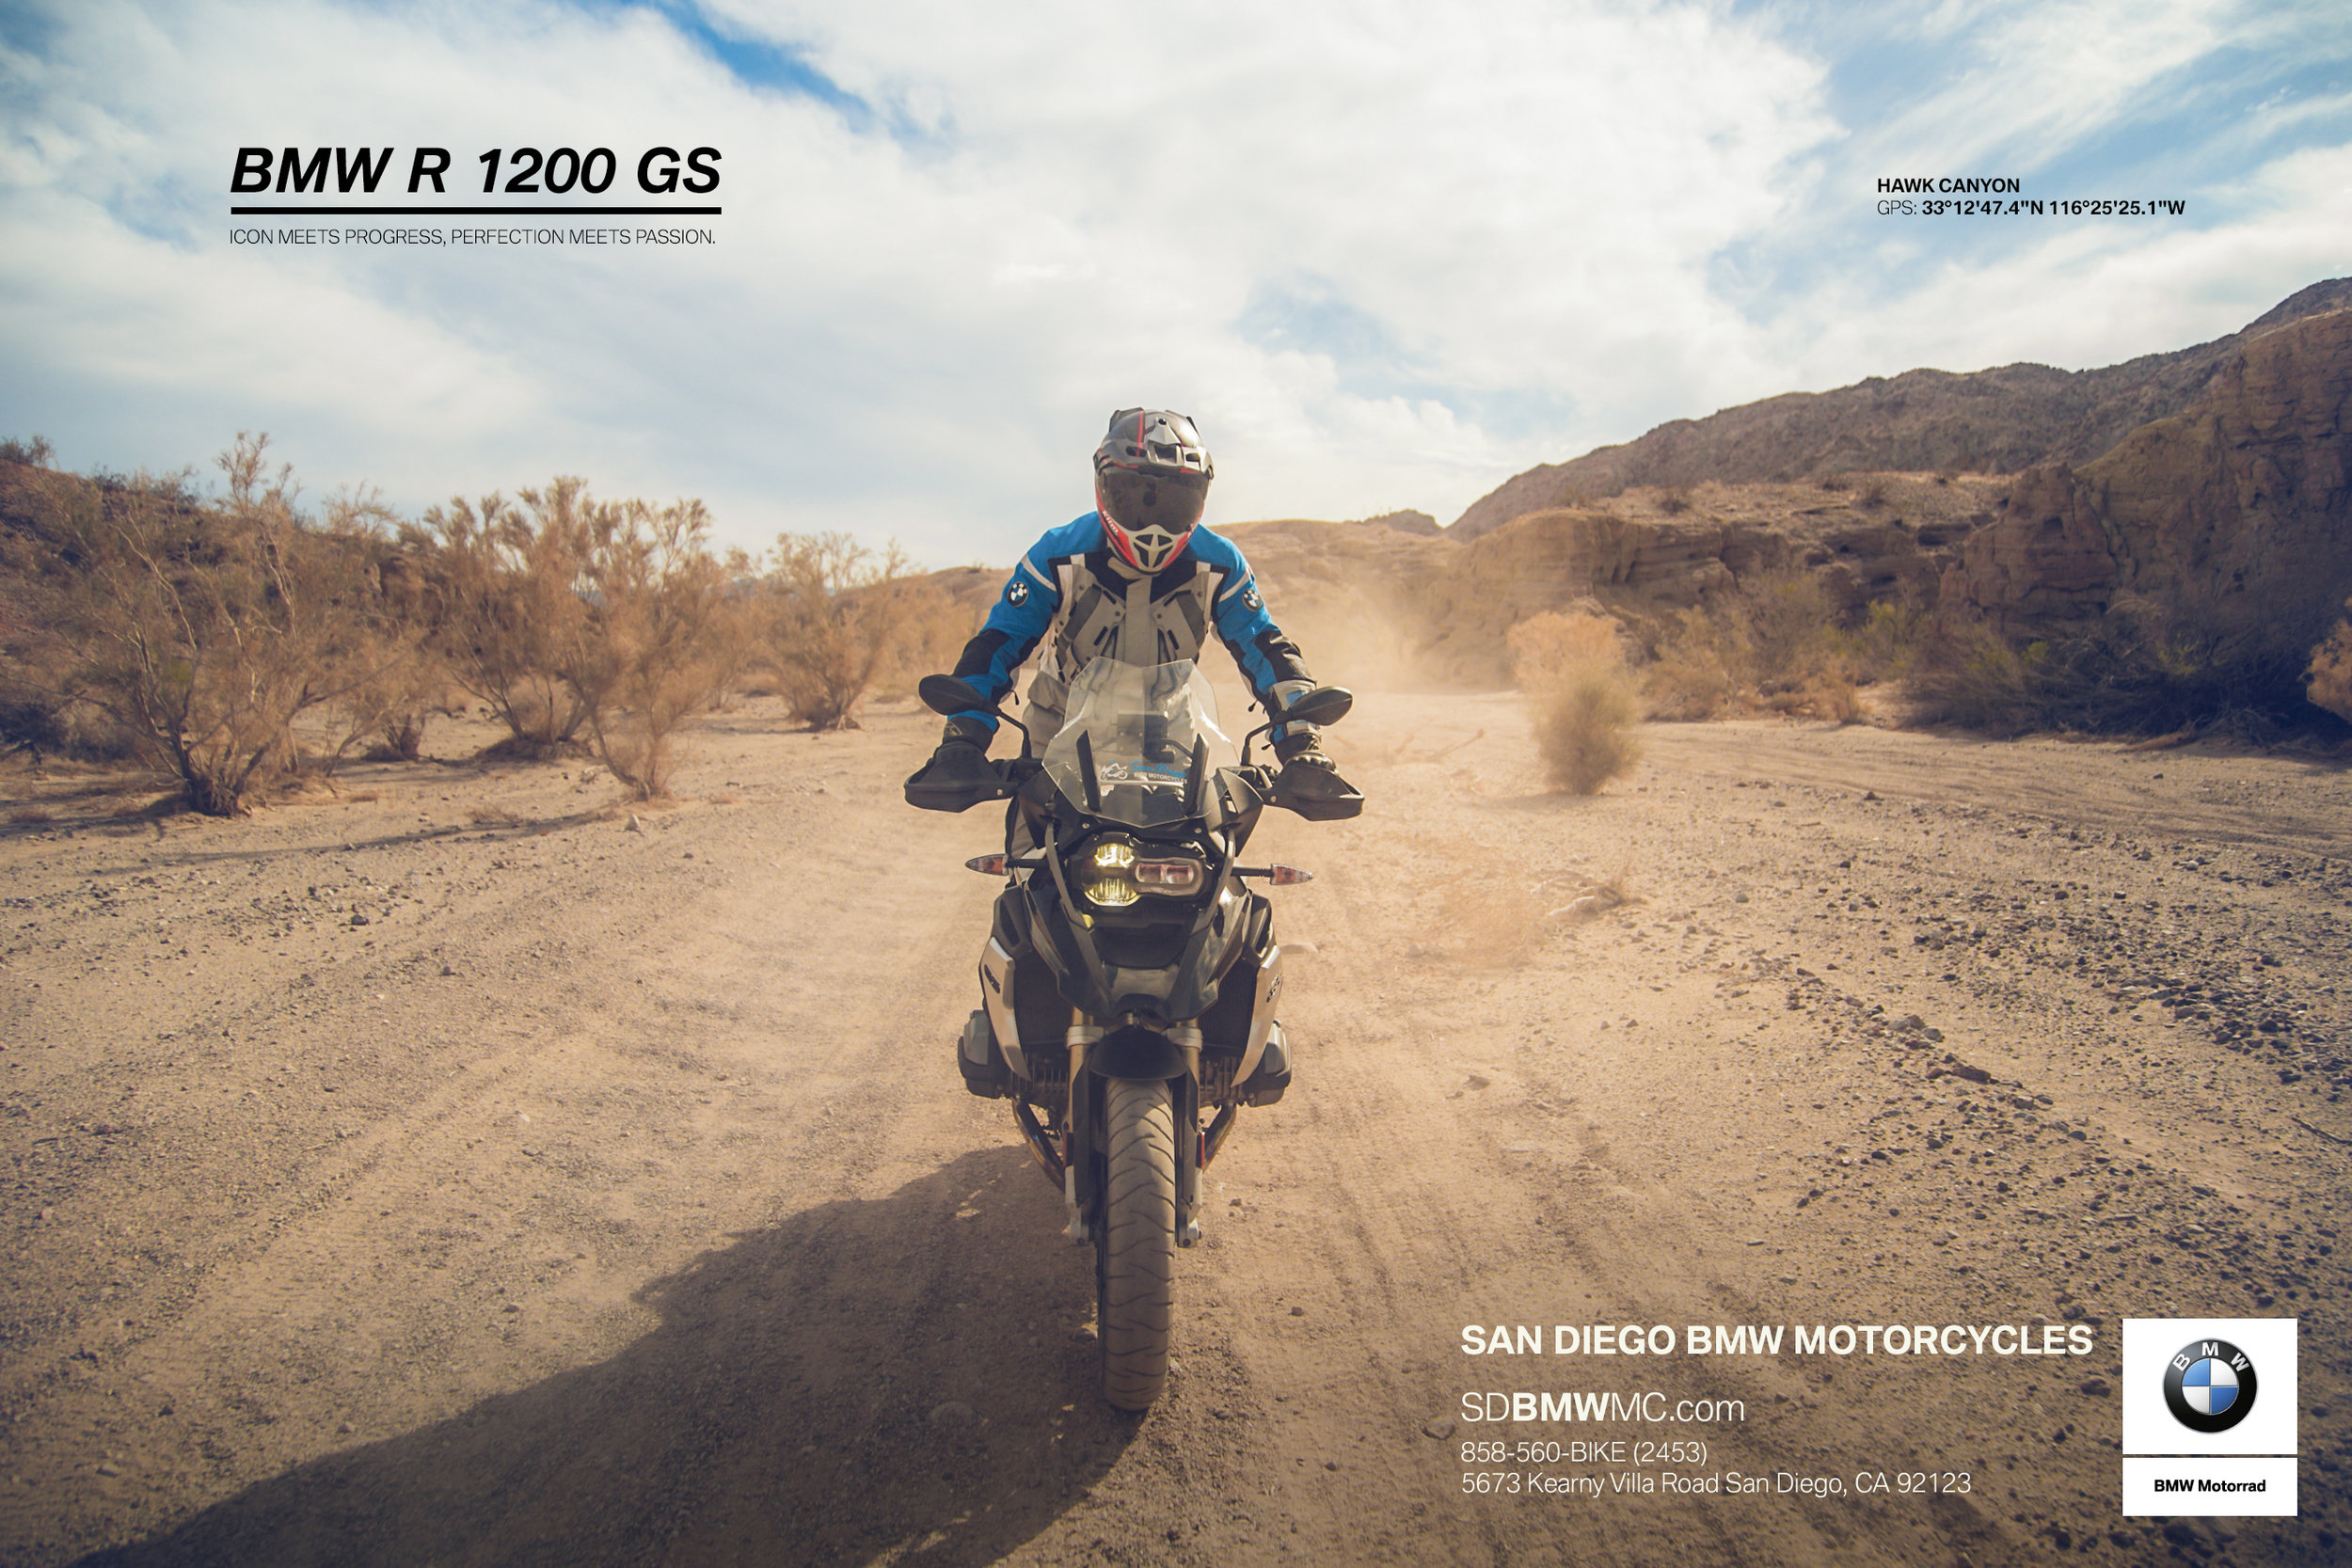 BMW Motorcycle 1200 GS